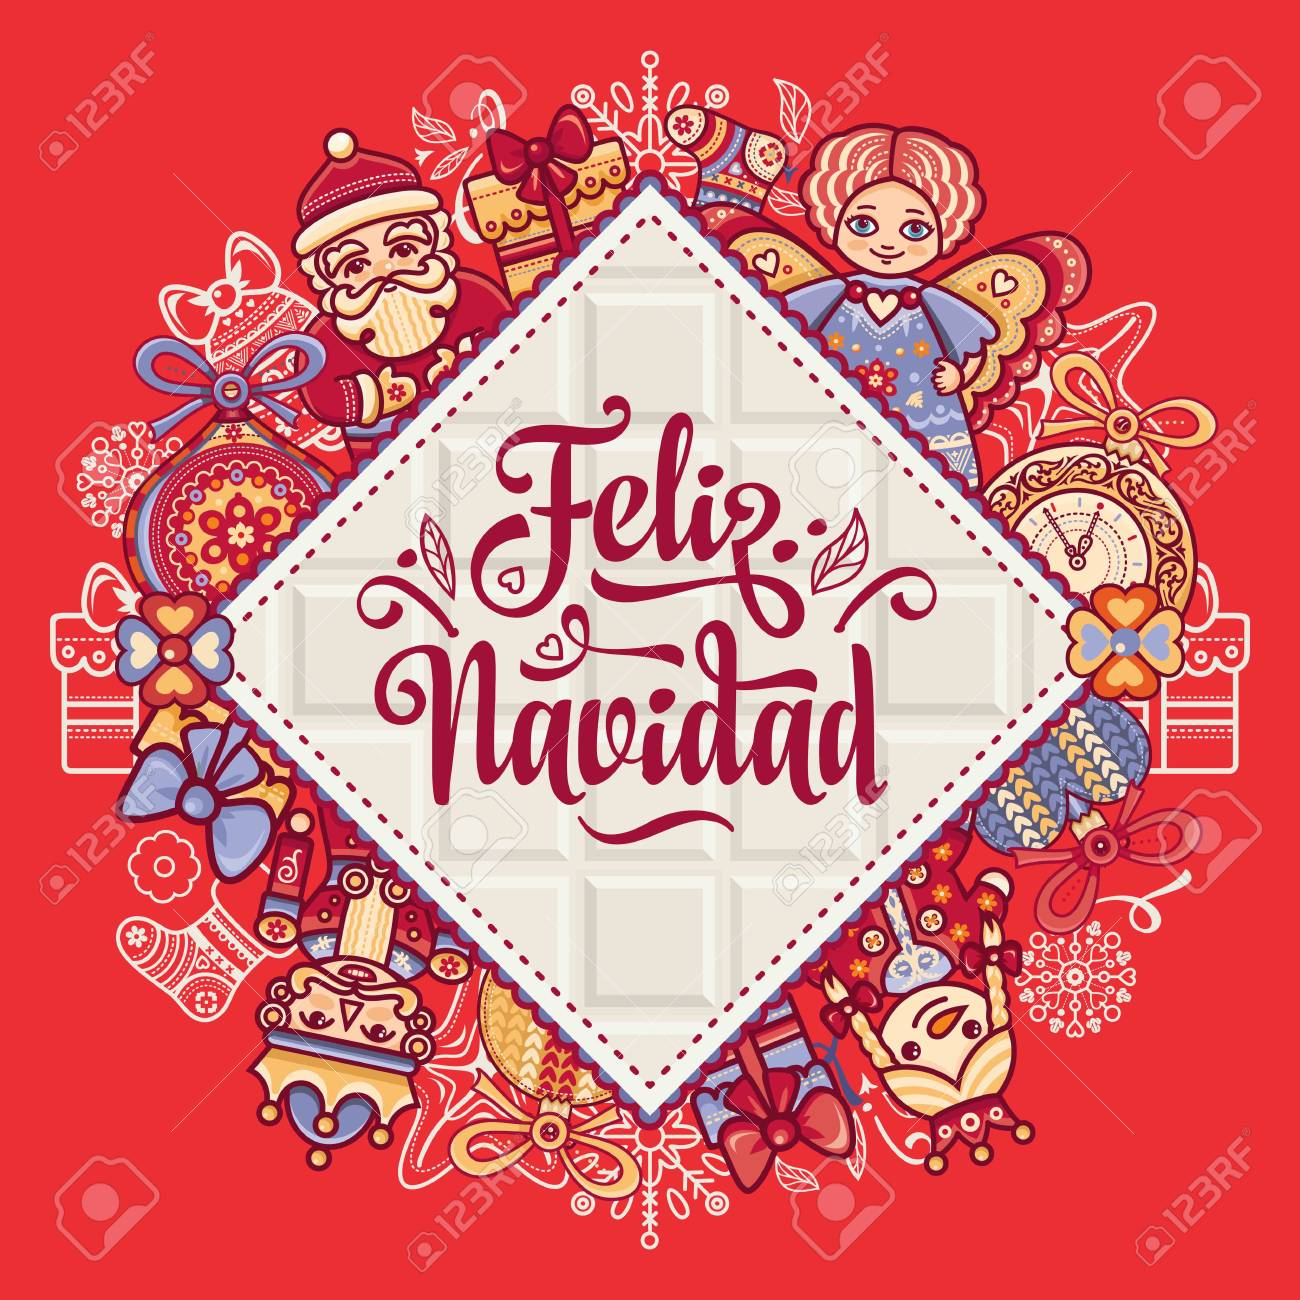 christmas decorations for invitations and greeting cards in spanish stock vector 73021195